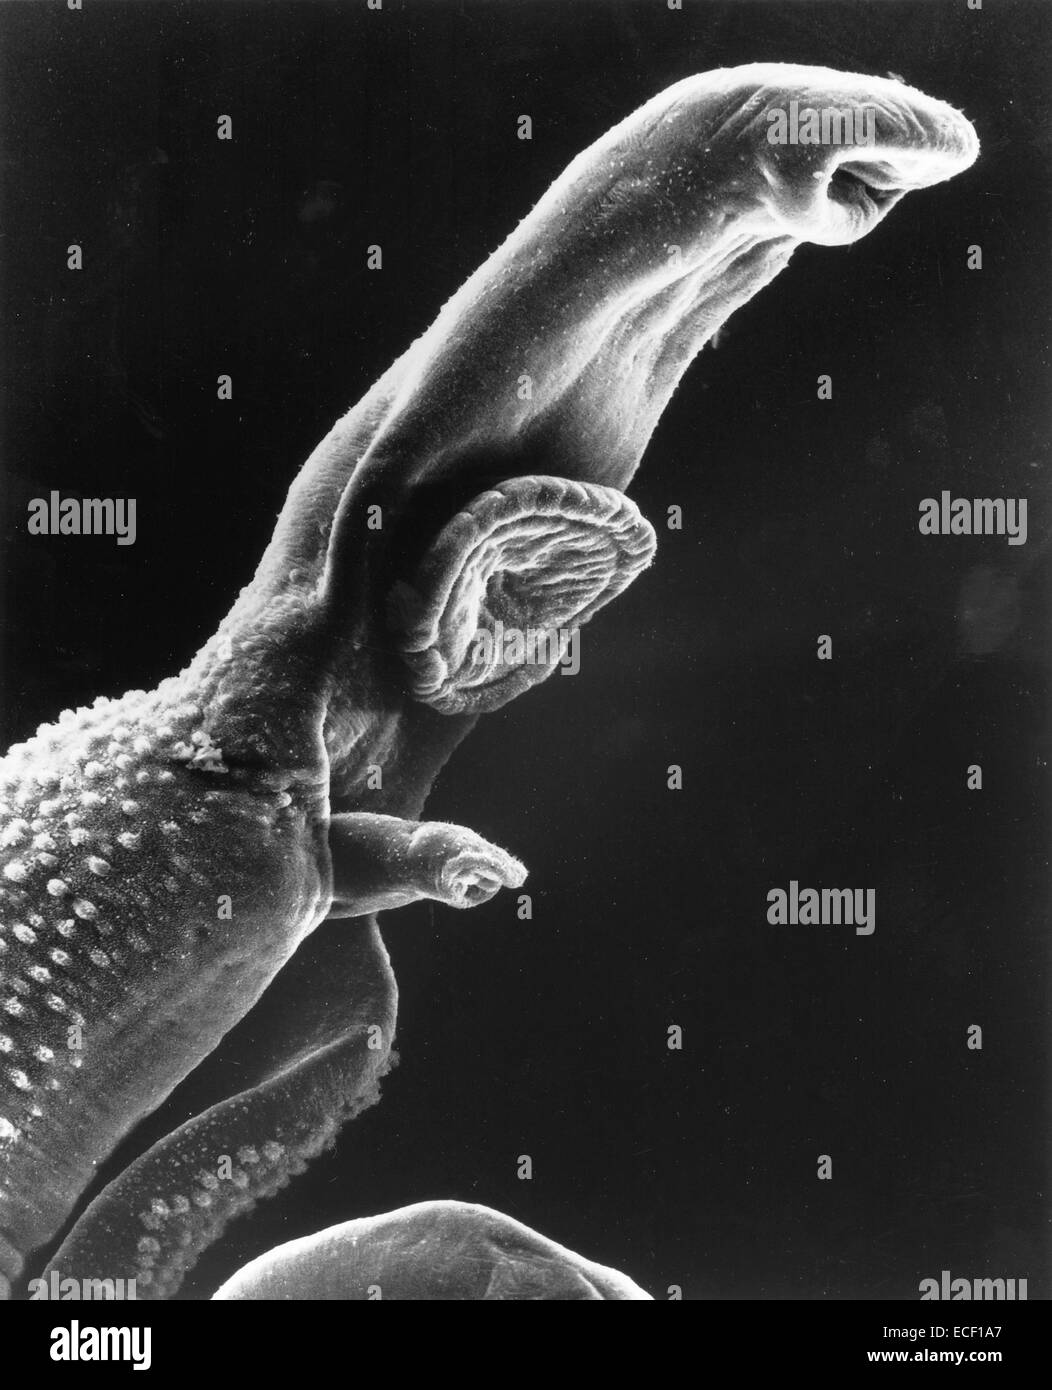 Scanning electron micrograph of a schistosome parasite, which enters the body through the skin of persons coming - Stock Image